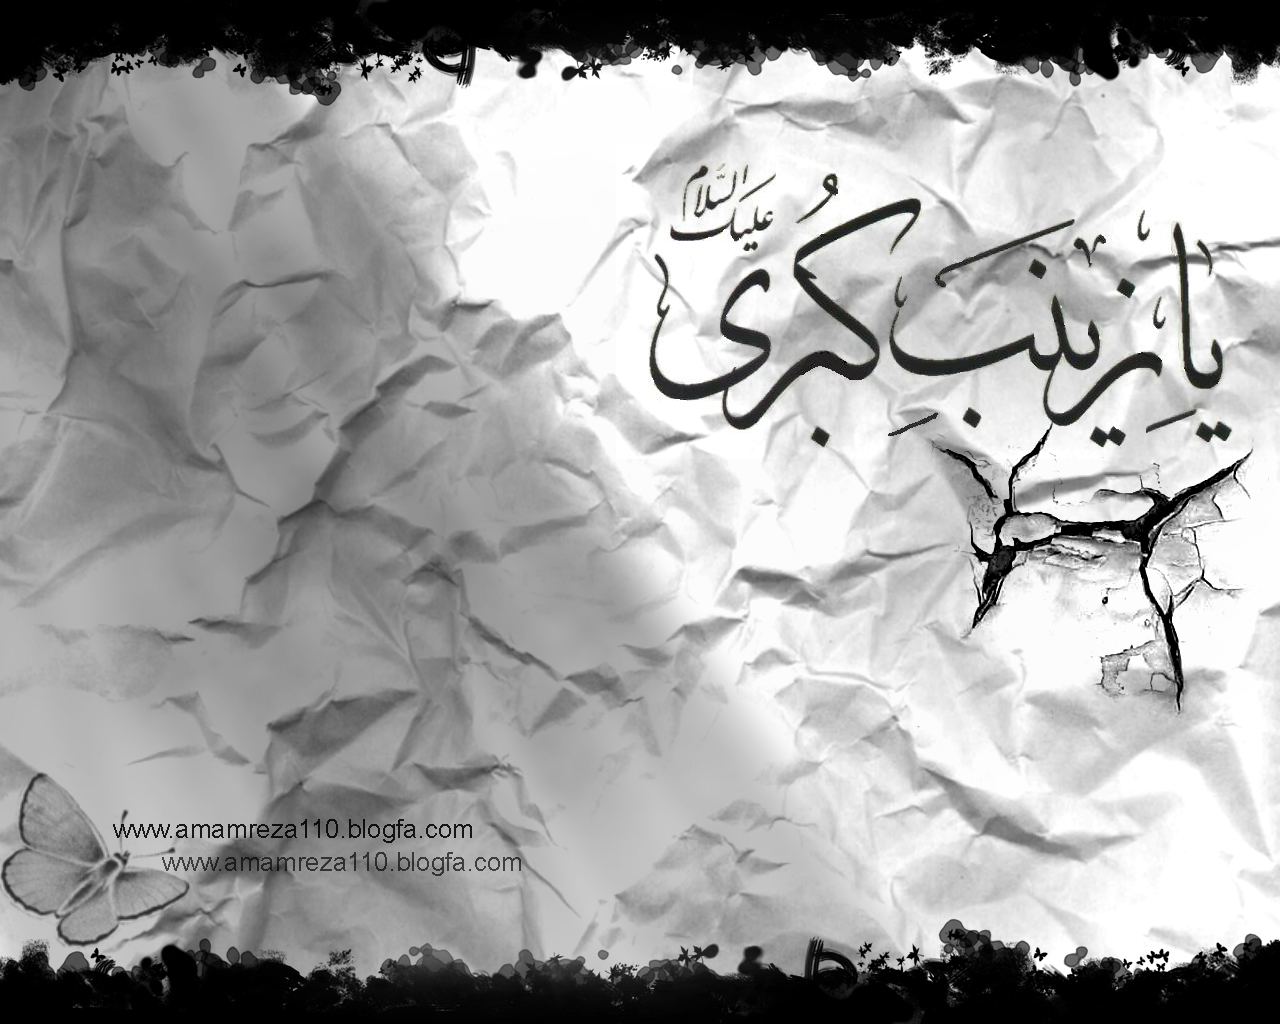 http://emamreza110.persiangig.com/background/zinab/zinab2.jpg